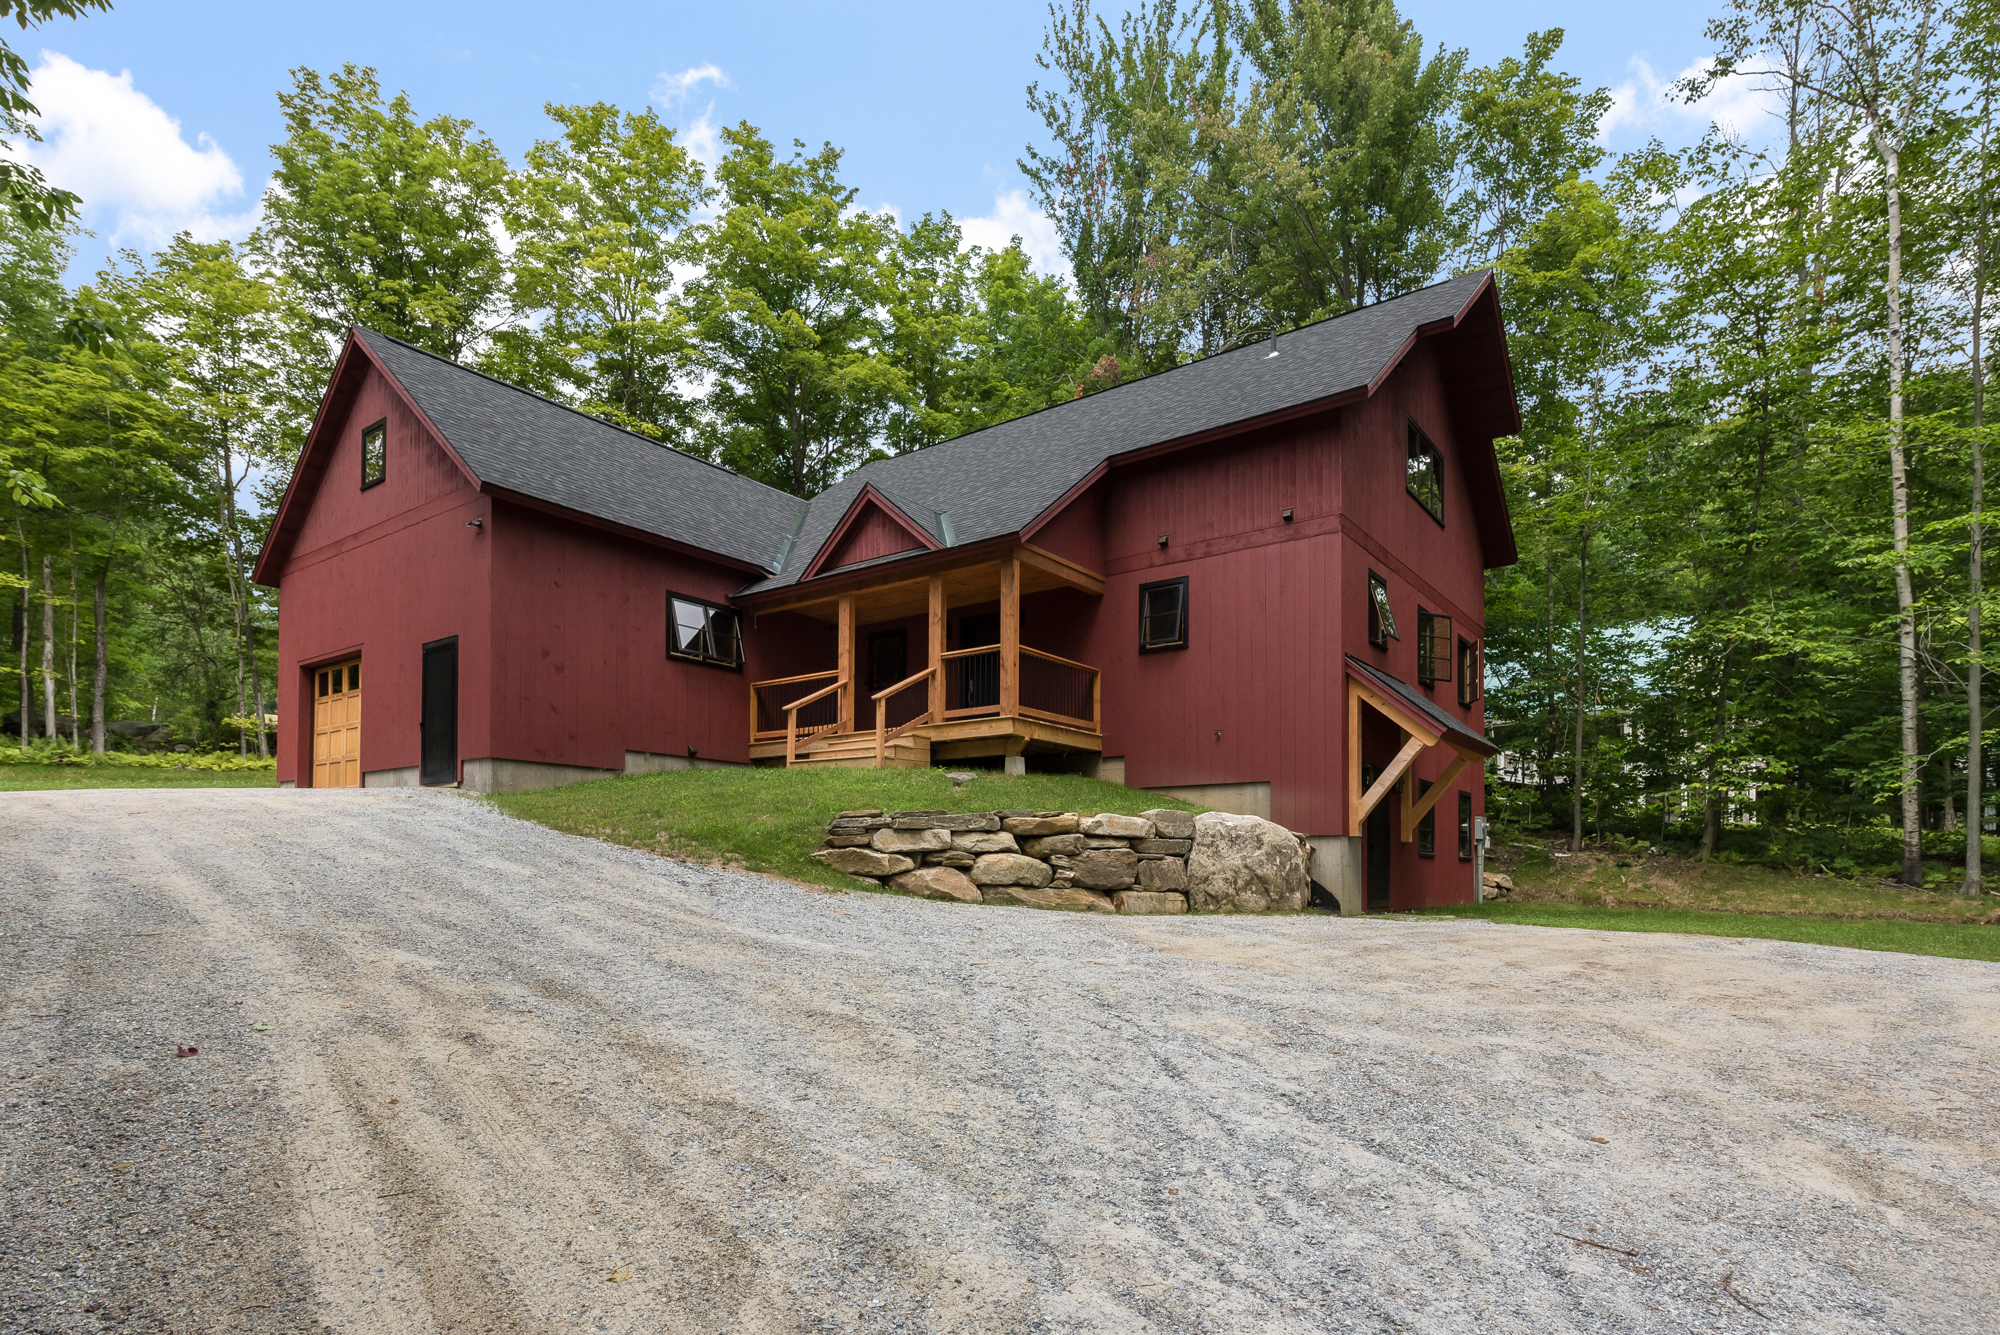 mls cottage estate usa woodstock in vermont vt pine st rentals real